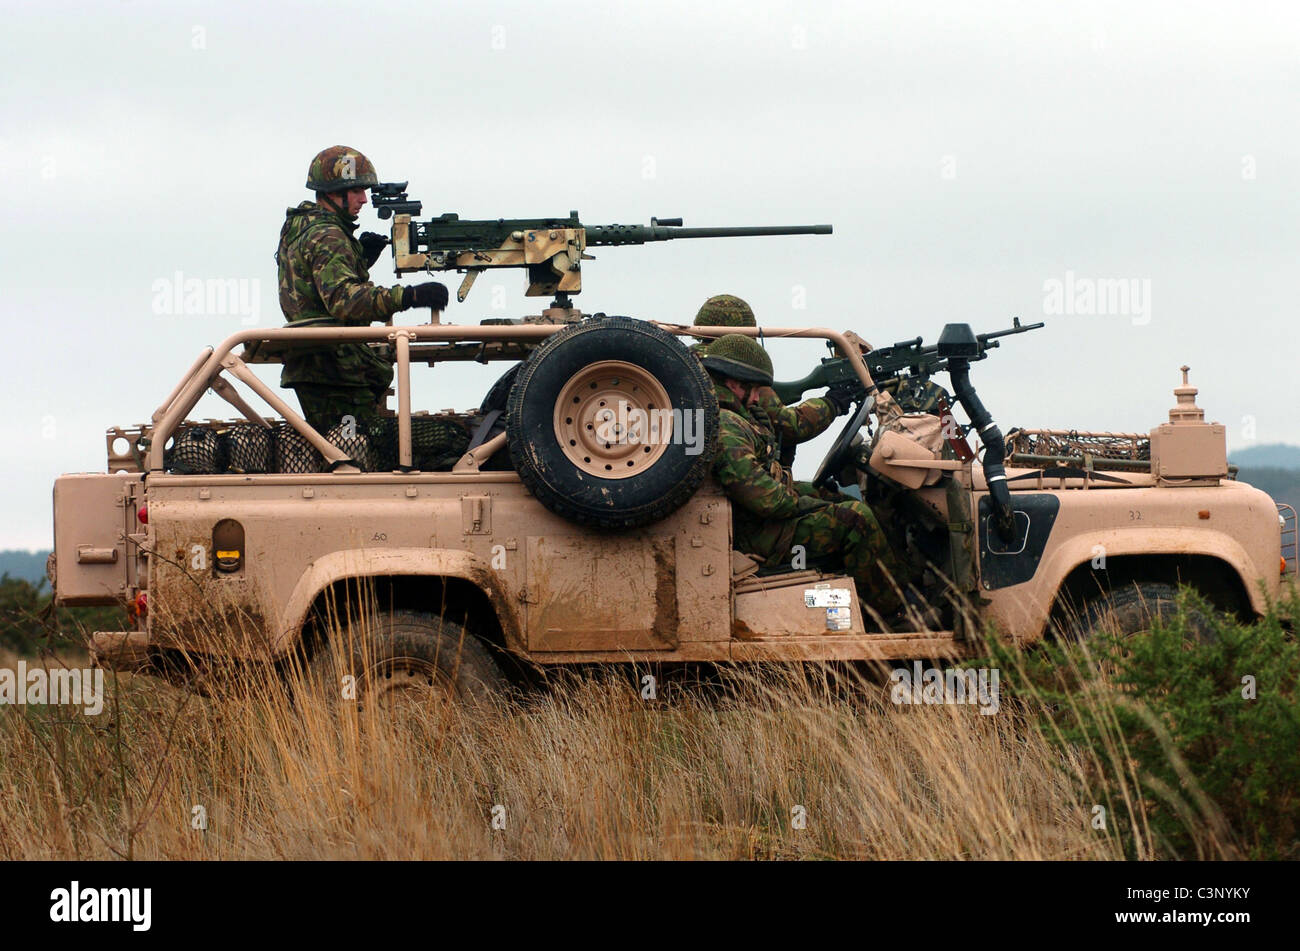 Pinkpanther land rover SAS desert long distance reconnaissance special operations missions US rangers - Stock Image